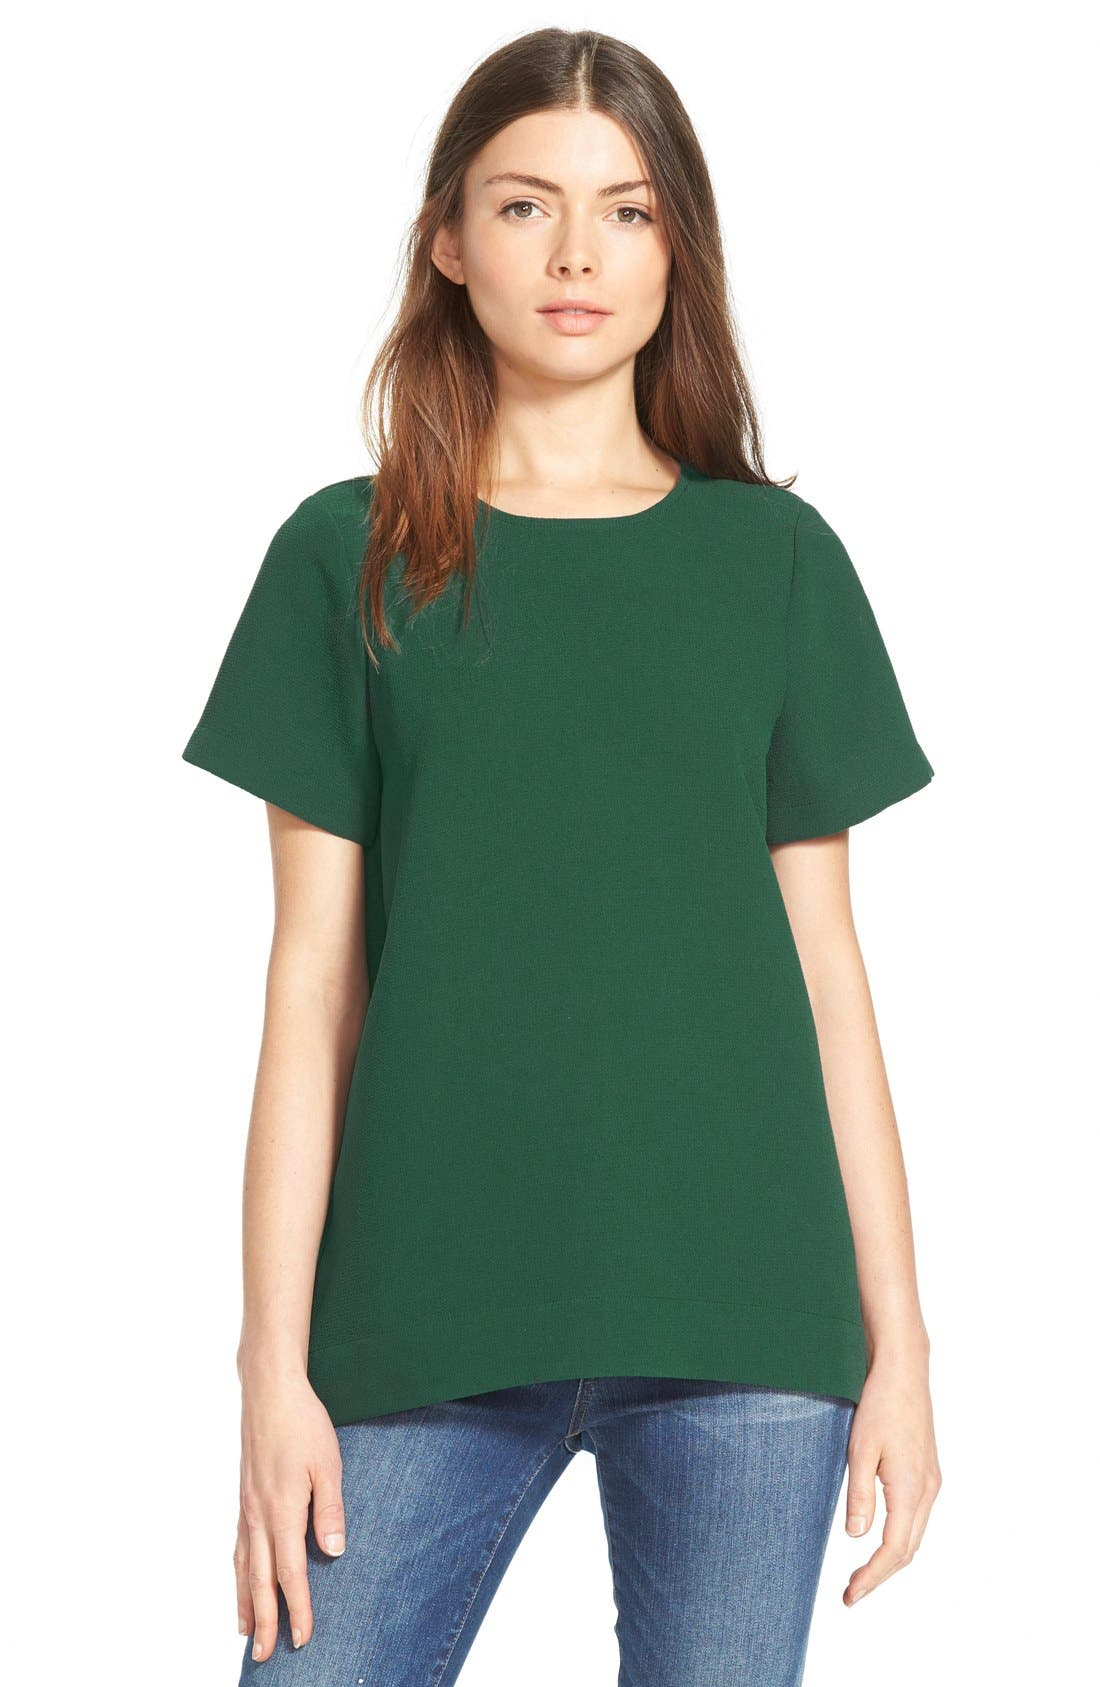 Madewell Pleated Short Sleeve Tee